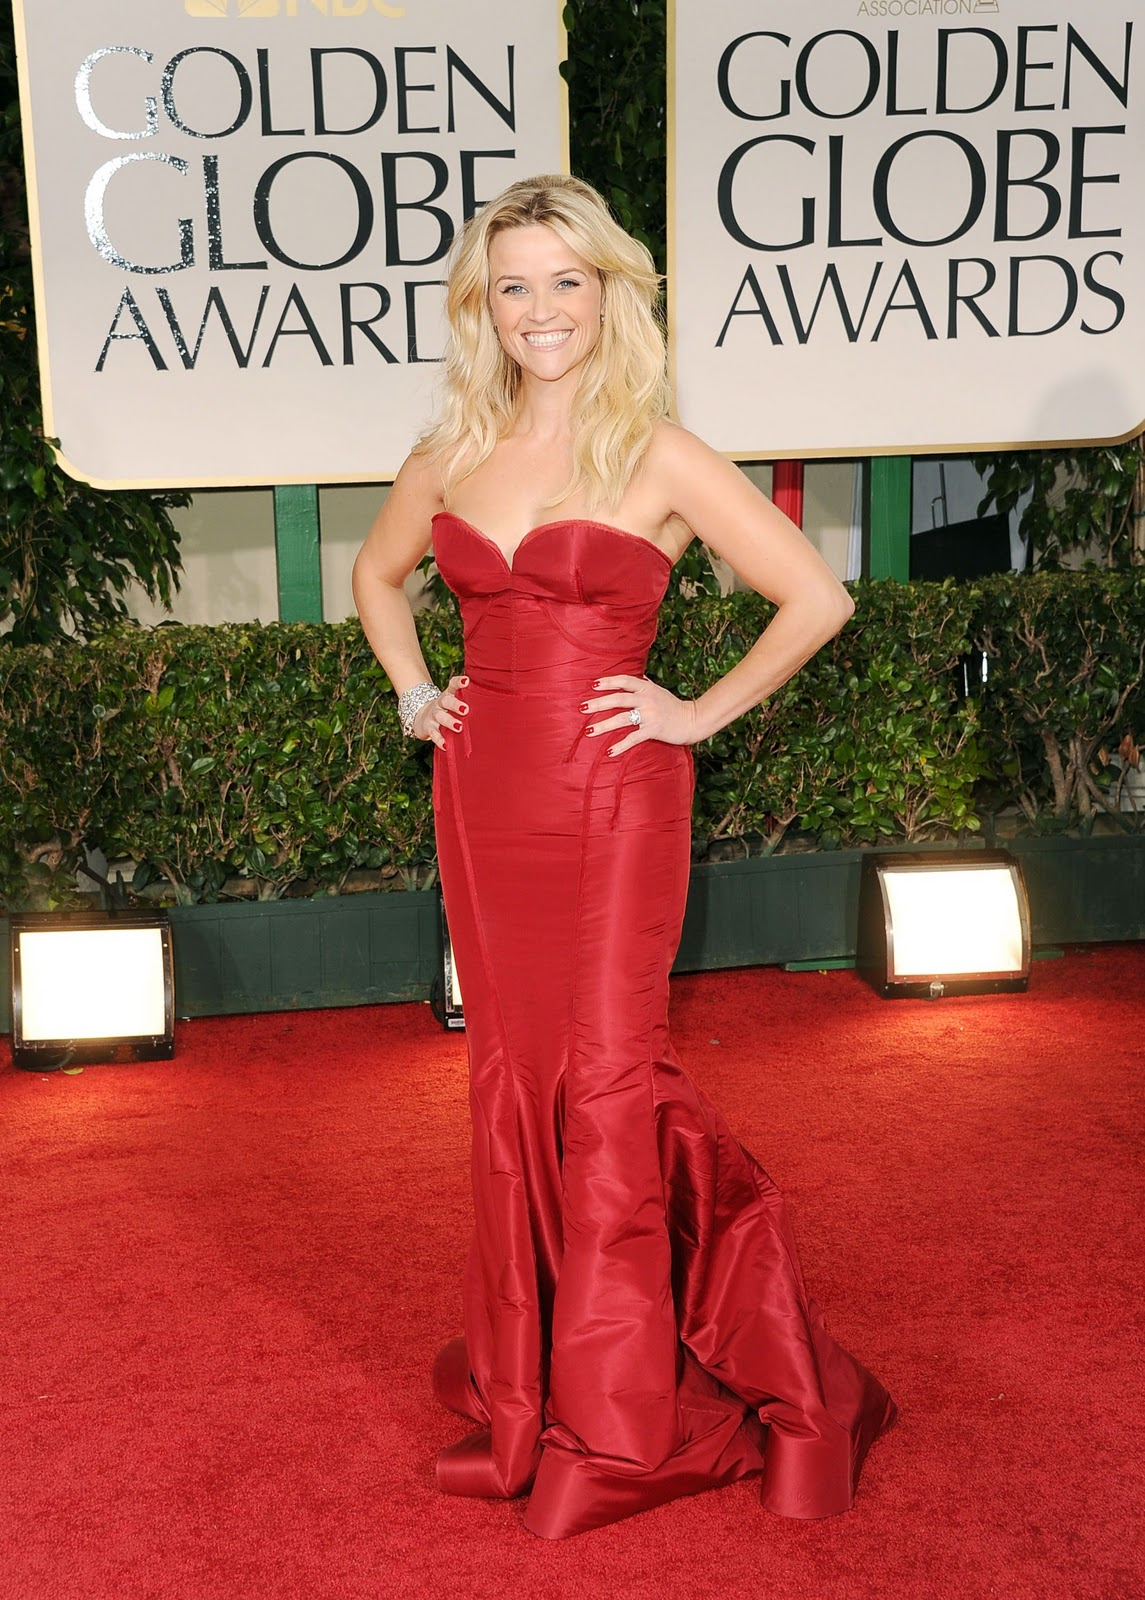 http://4.bp.blogspot.com/-bmIVYnJHQIs/TxN4JKdFBdI/AAAAAAAABqQ/wxwhzqUK2_A/s1600/CU-Reese+Witherspoon+arrives+at+the+69th+Annual+Golden+Globe+Awards-01.jpg